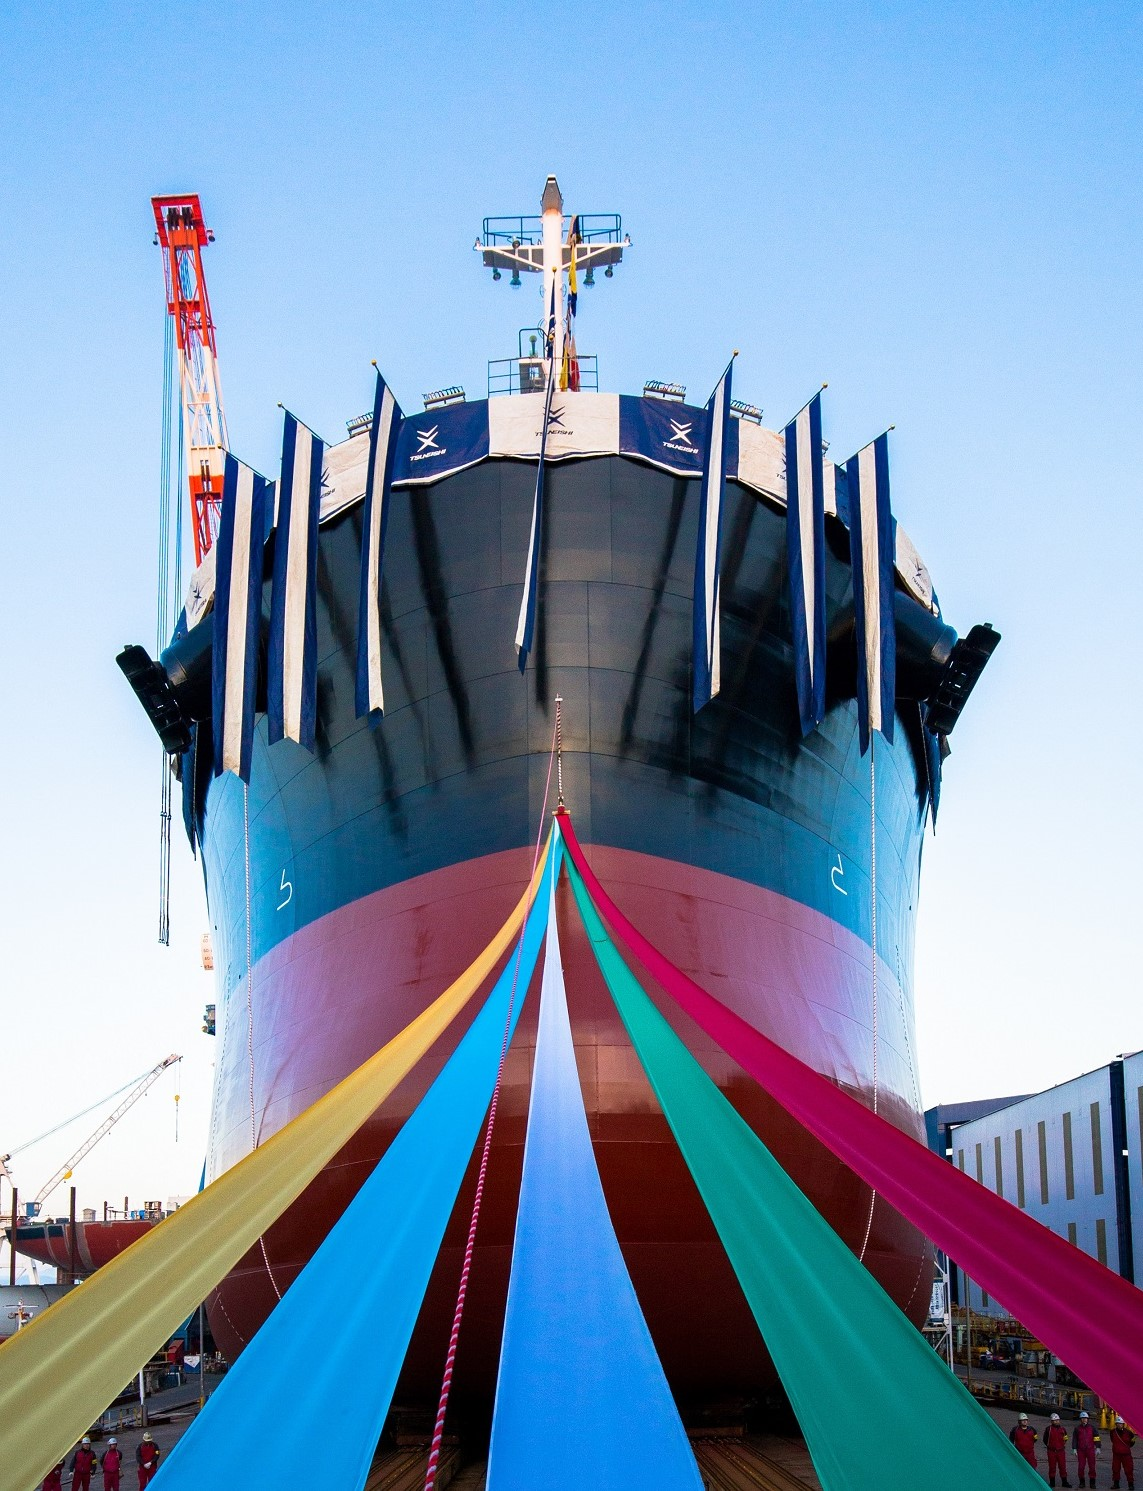 TSUNEISHI SHIPBUILDING Launching Ceremony Will Open to the Public on November 28th, 2018